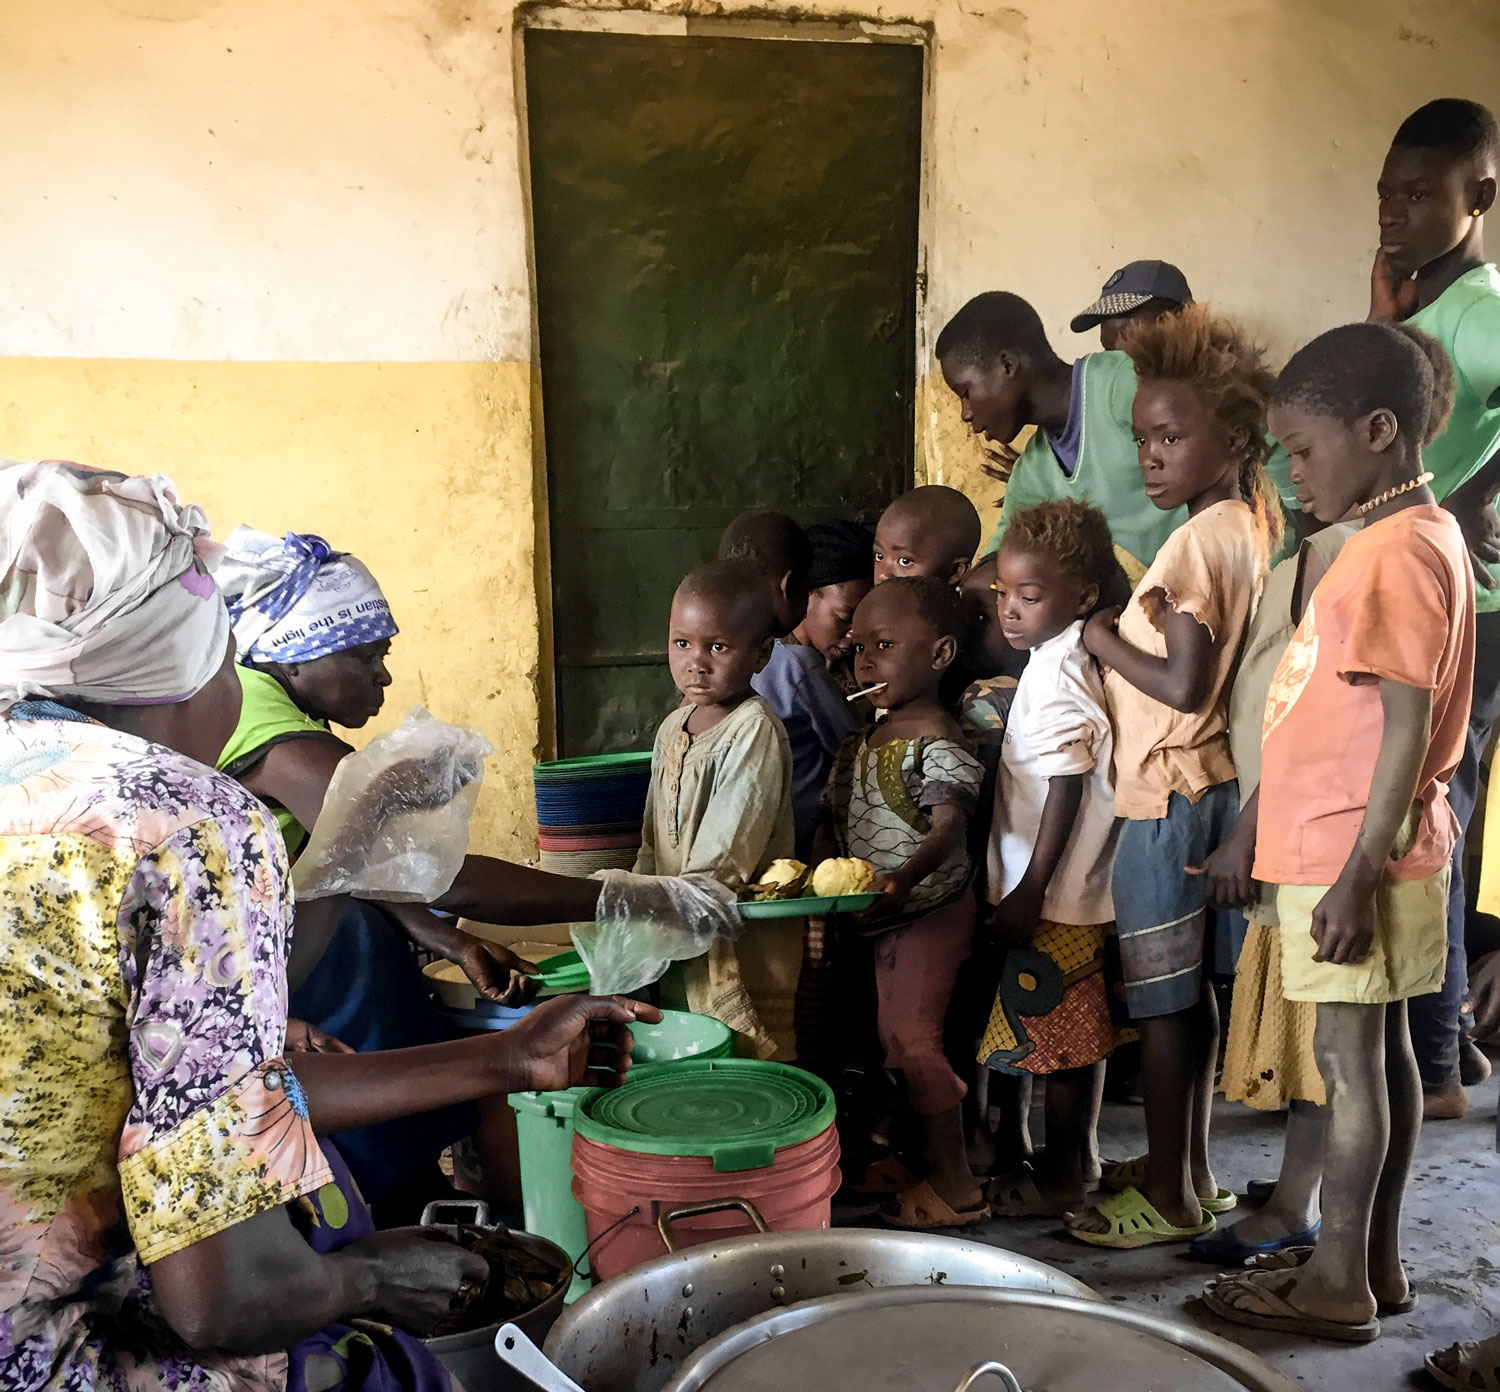 150 of the most vulnerable children in Toyota receive a daily meal, access to education and access to basic health care.